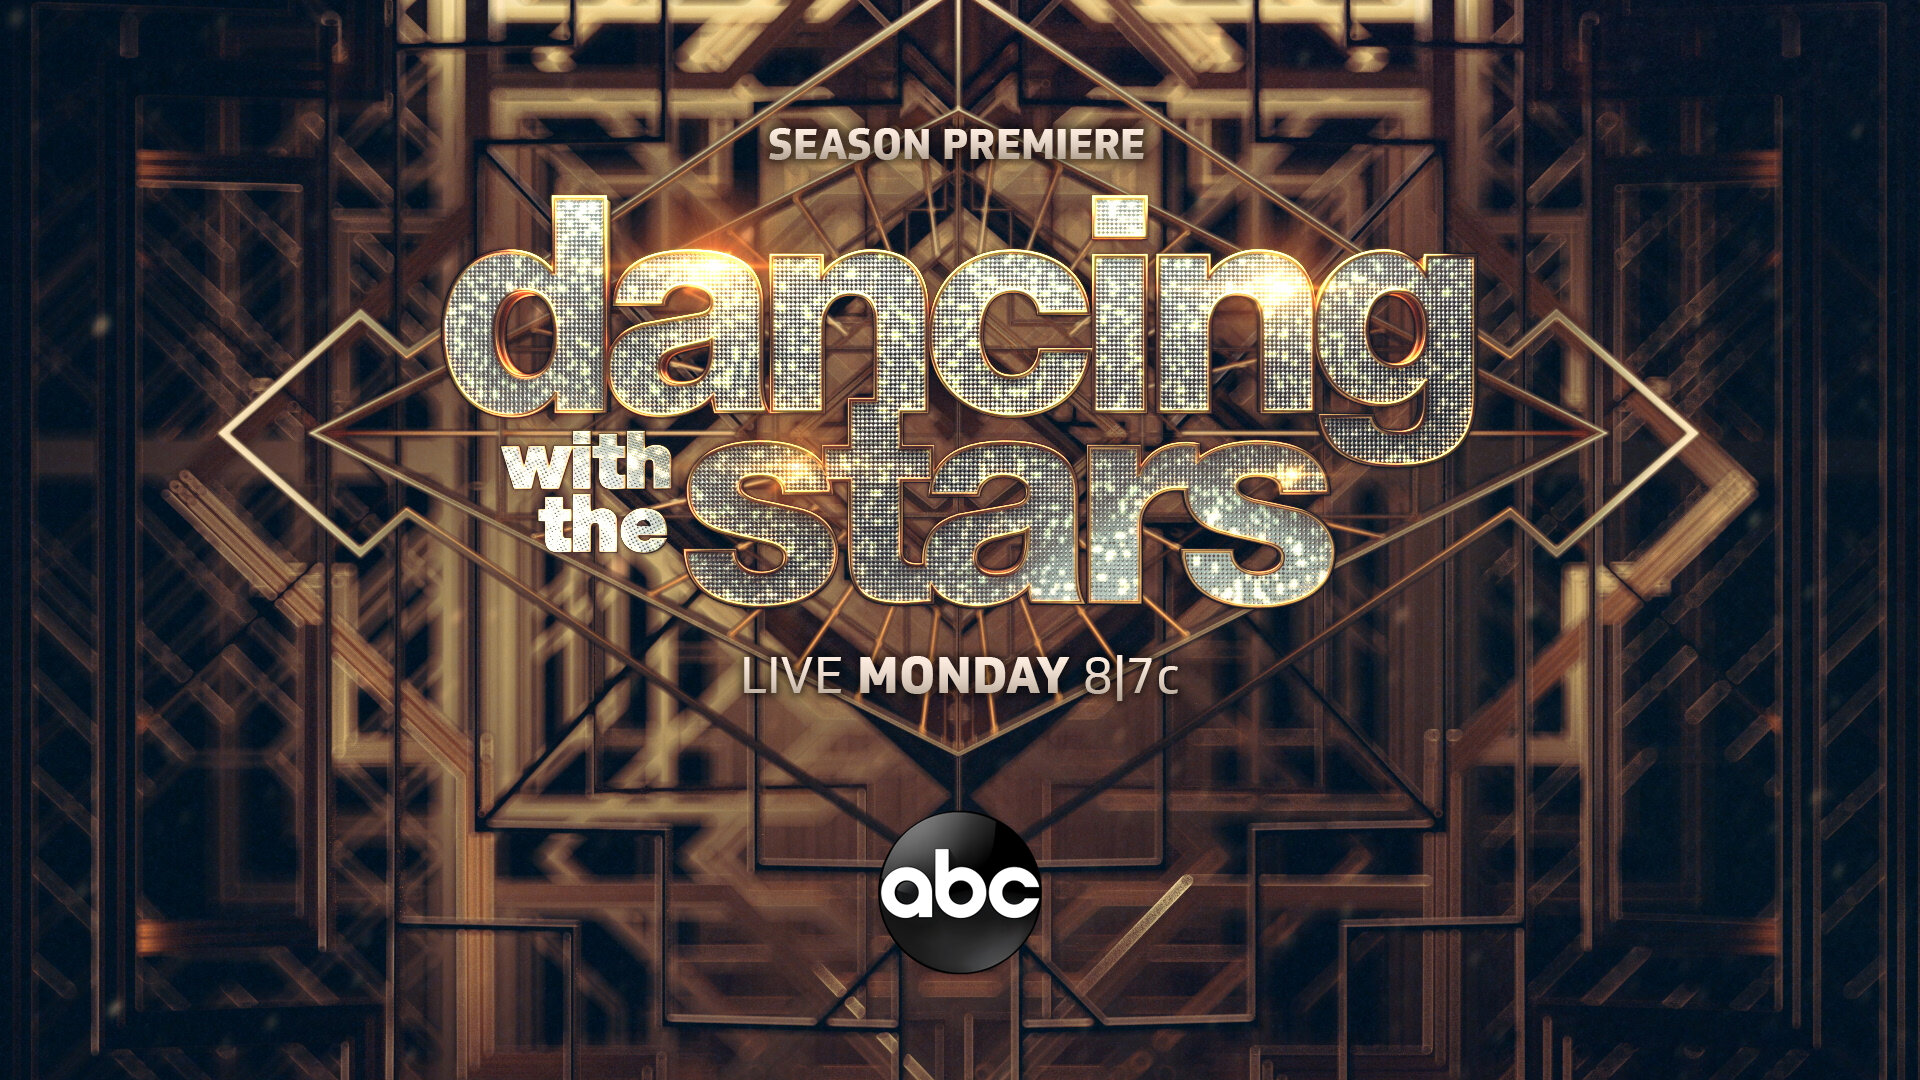 Dancing with the Stars Promo Toolkit